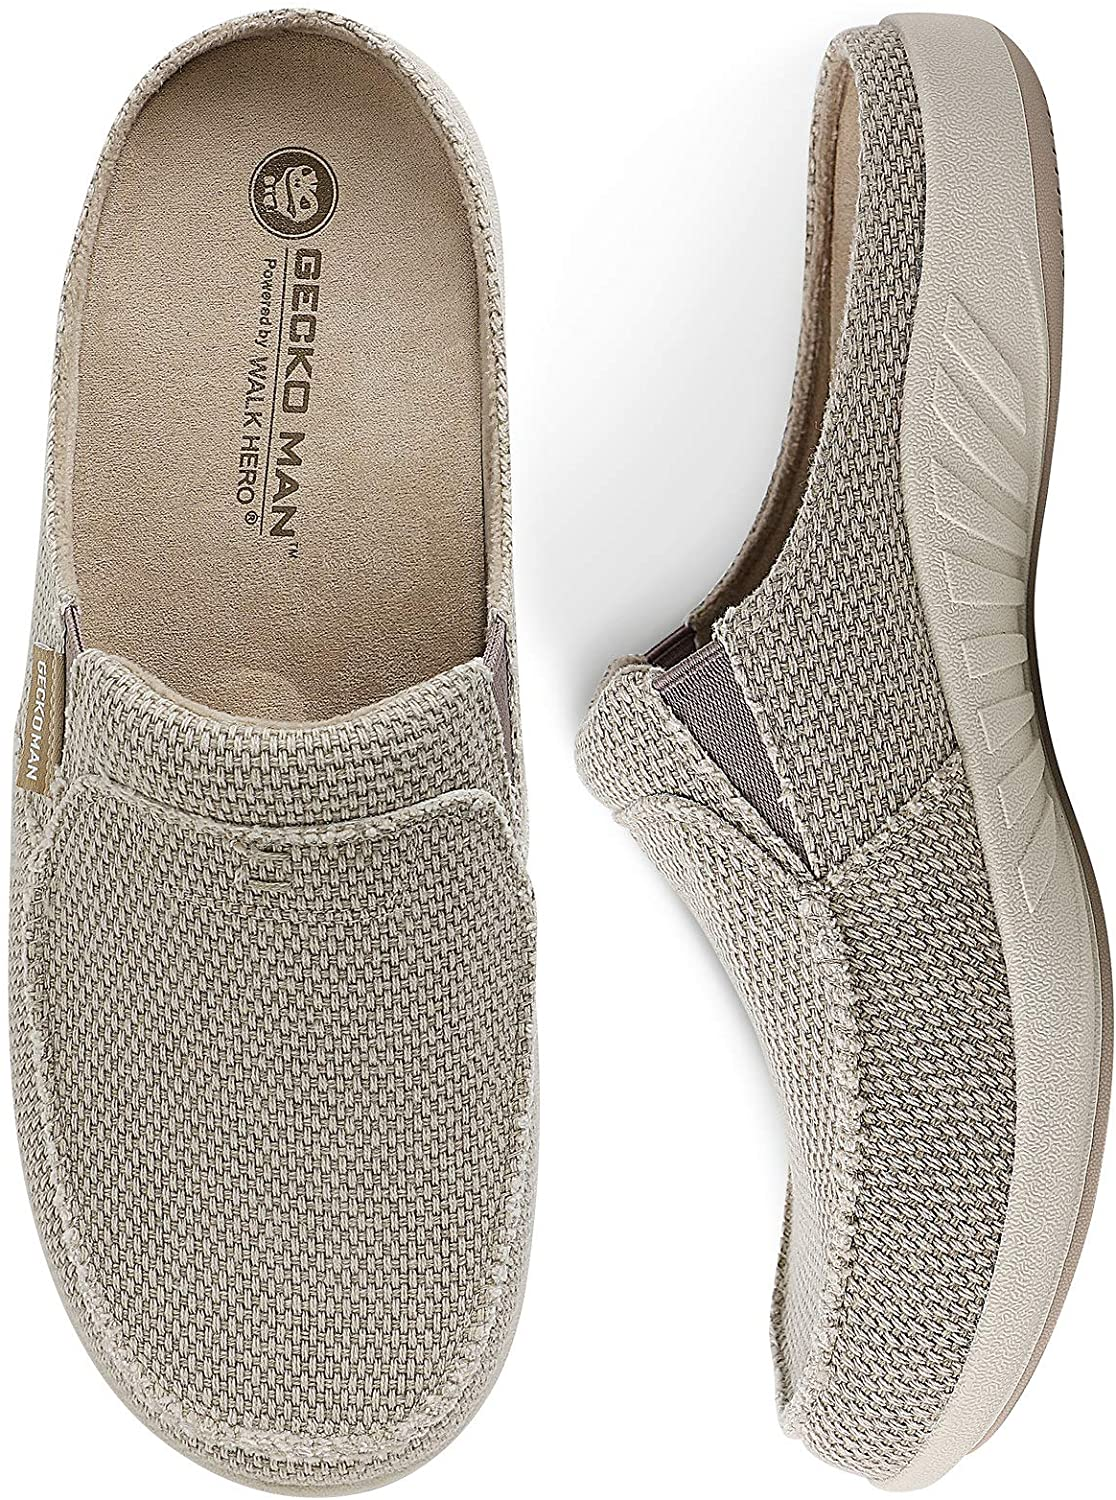 Mens Slippers with San Diego Mall Arch Support Raleigh Mall Canvas wi Men for House Slipper